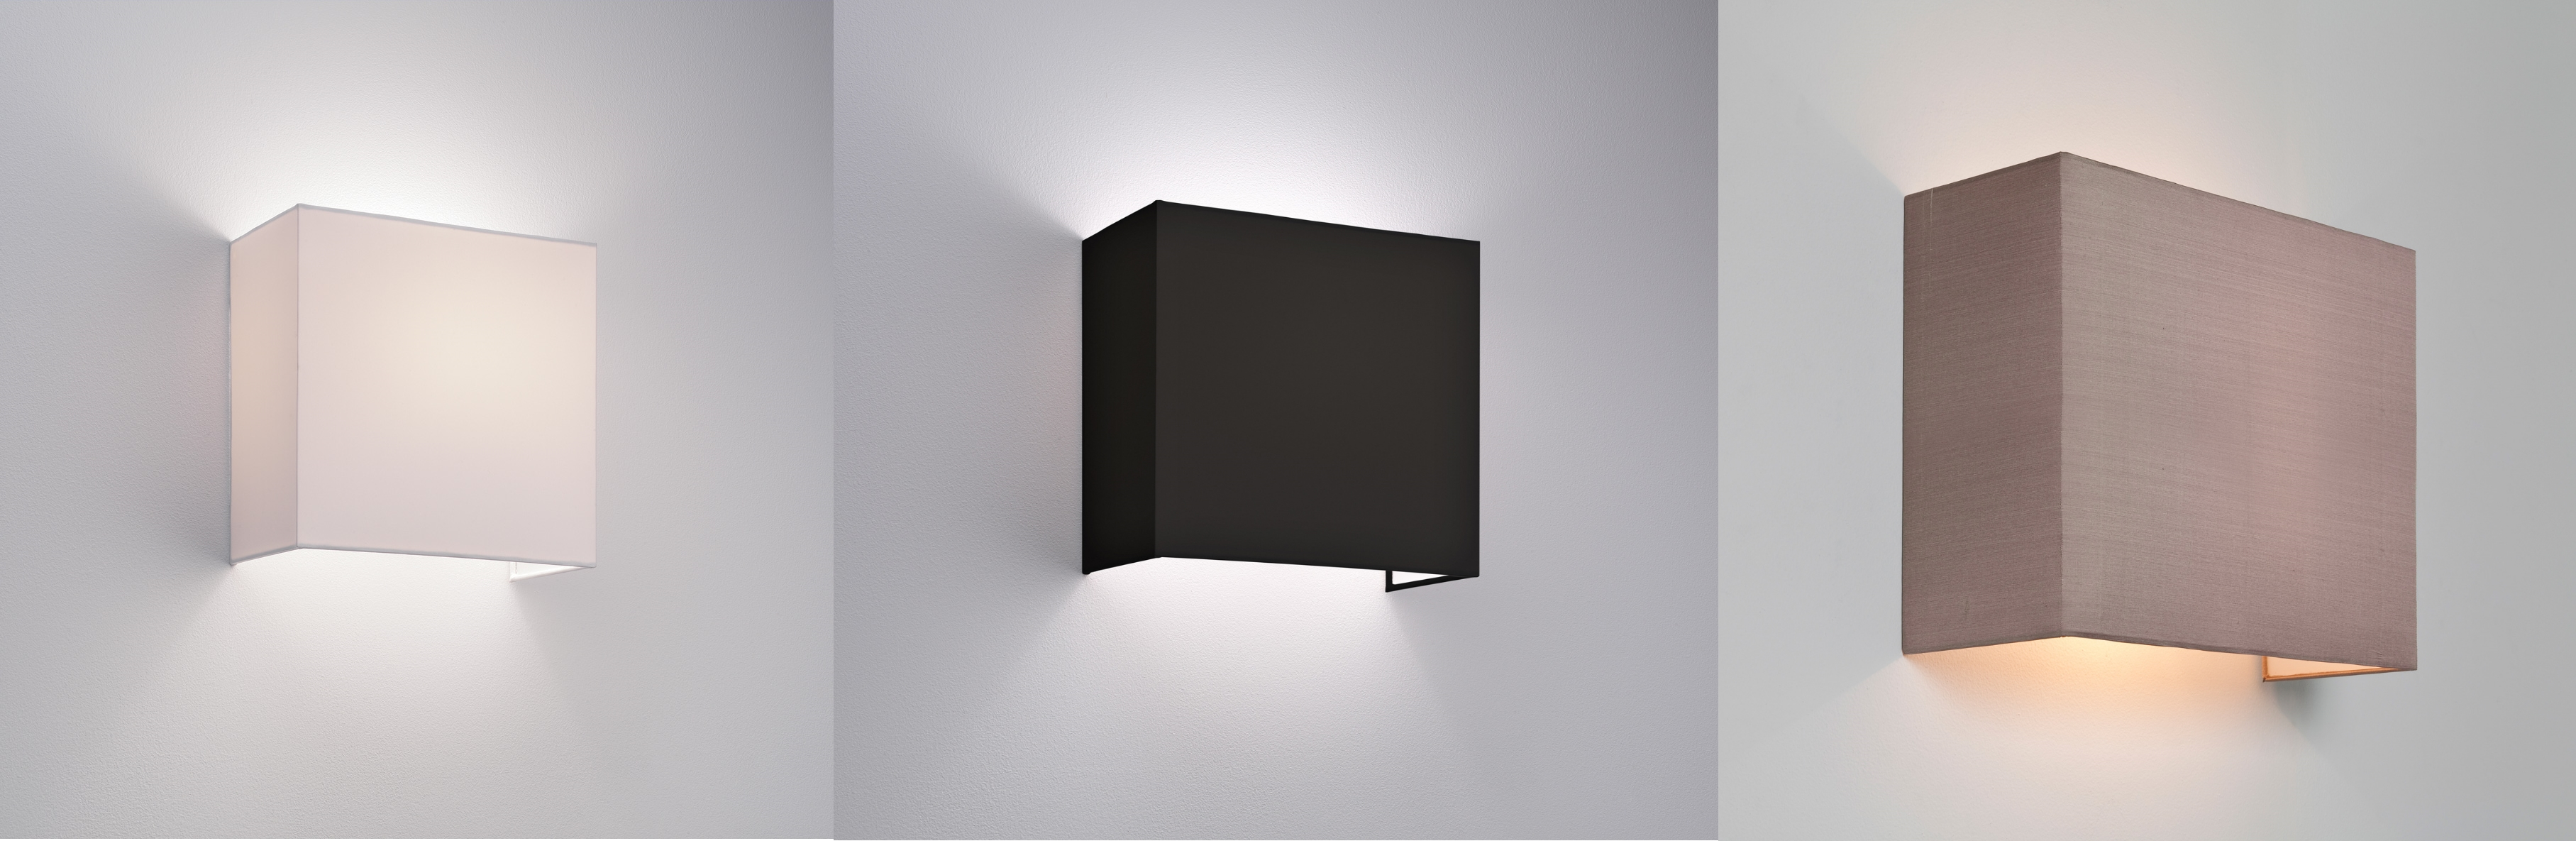 Wall Lamp With Shades : Astro Chuo 250 fabric wall light shade 60W E27 white black oyster eBay